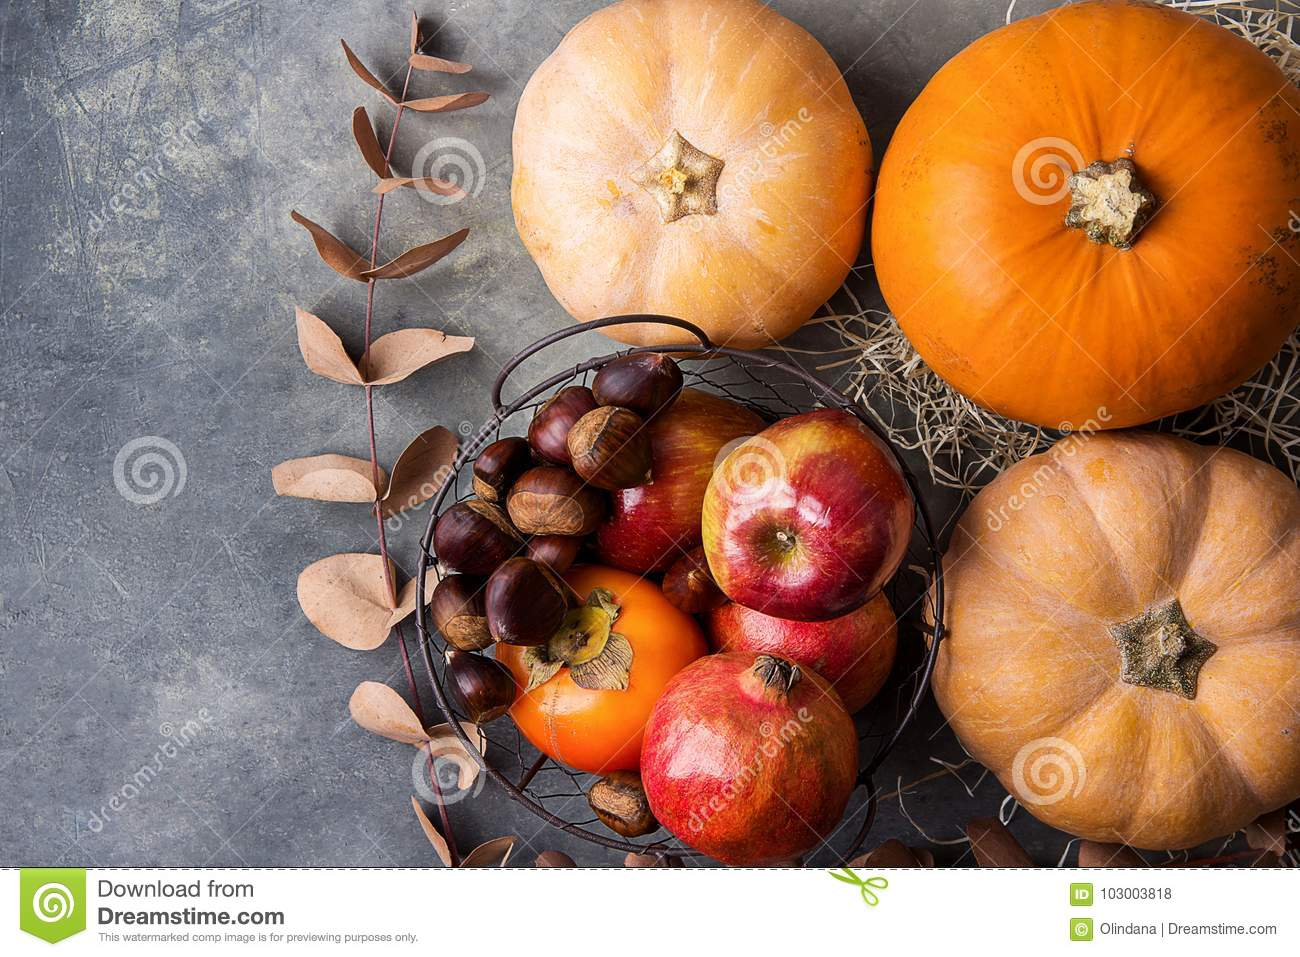 Vibrant Orange Color Pumpkin Ripe Organic Red Glossy Apples Pomegranates Chestnuts Persimmons Dry Autumn on Grey Stone Background.